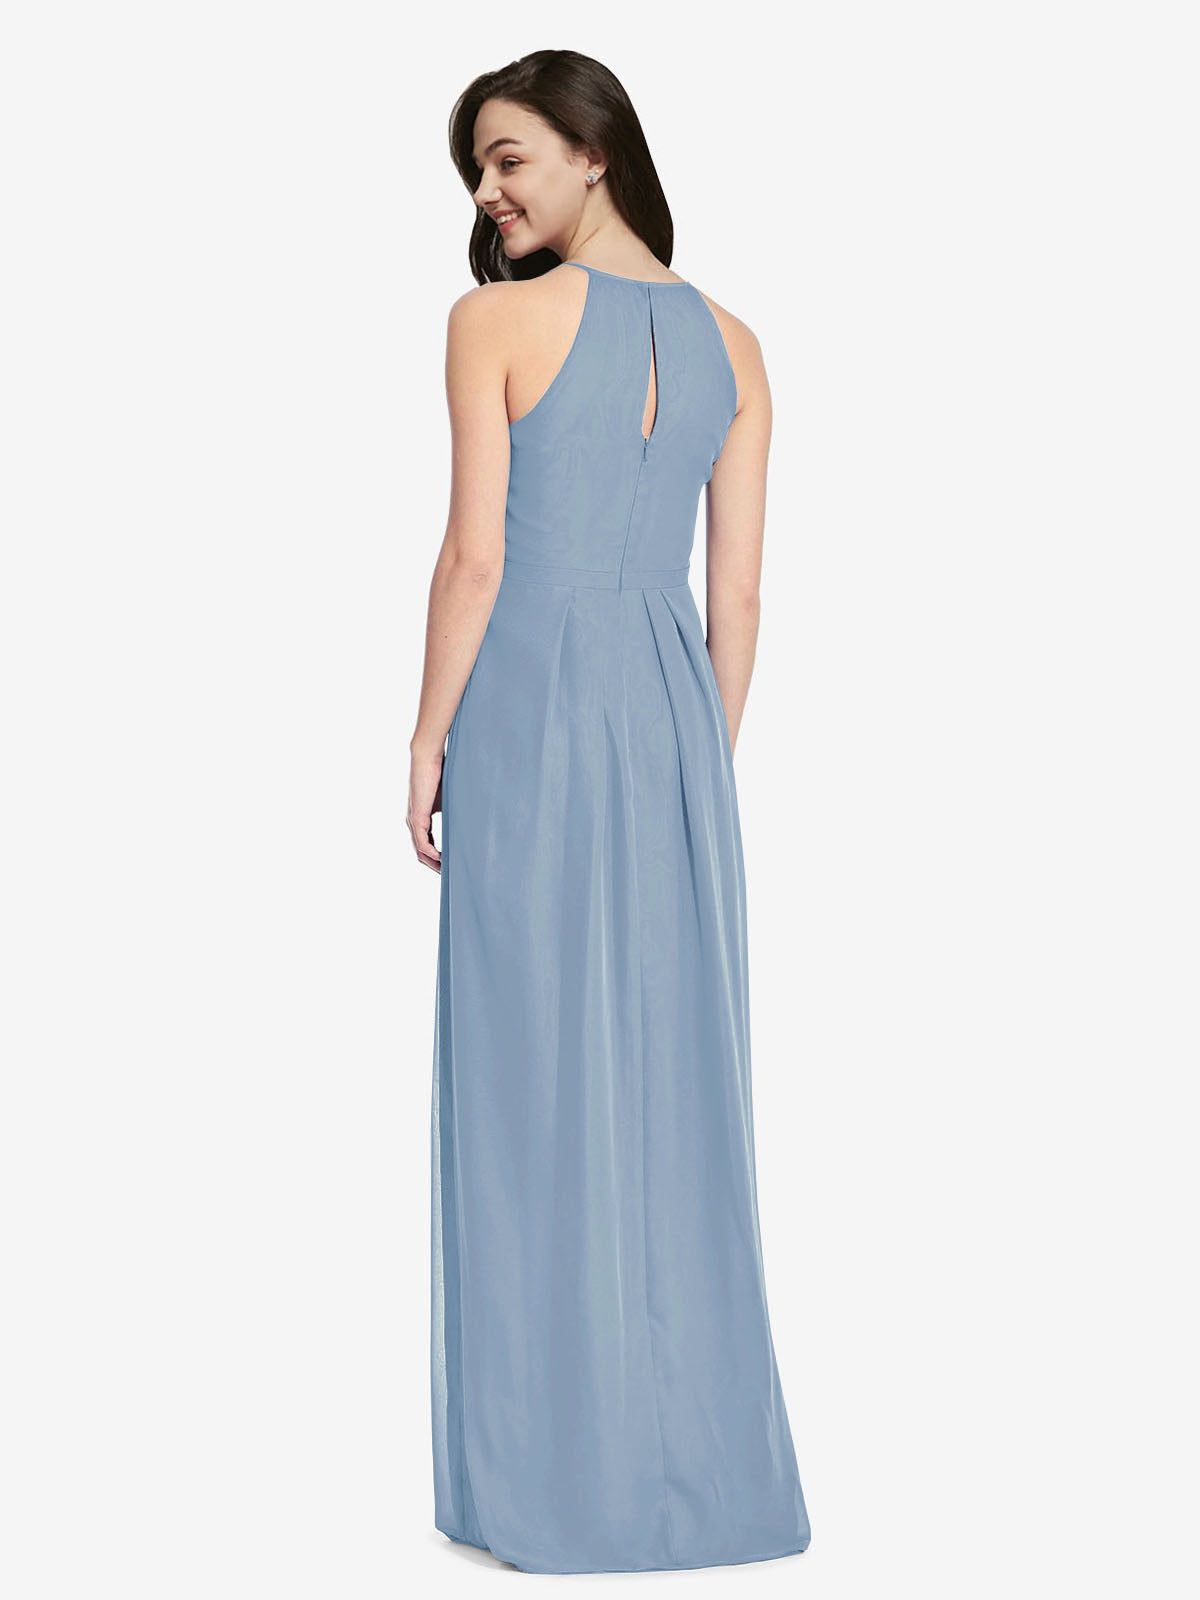 Long Sheath High Neck Halter Sleeveless Dusty Blue Chiffon Bridesmaid Dress Koloti